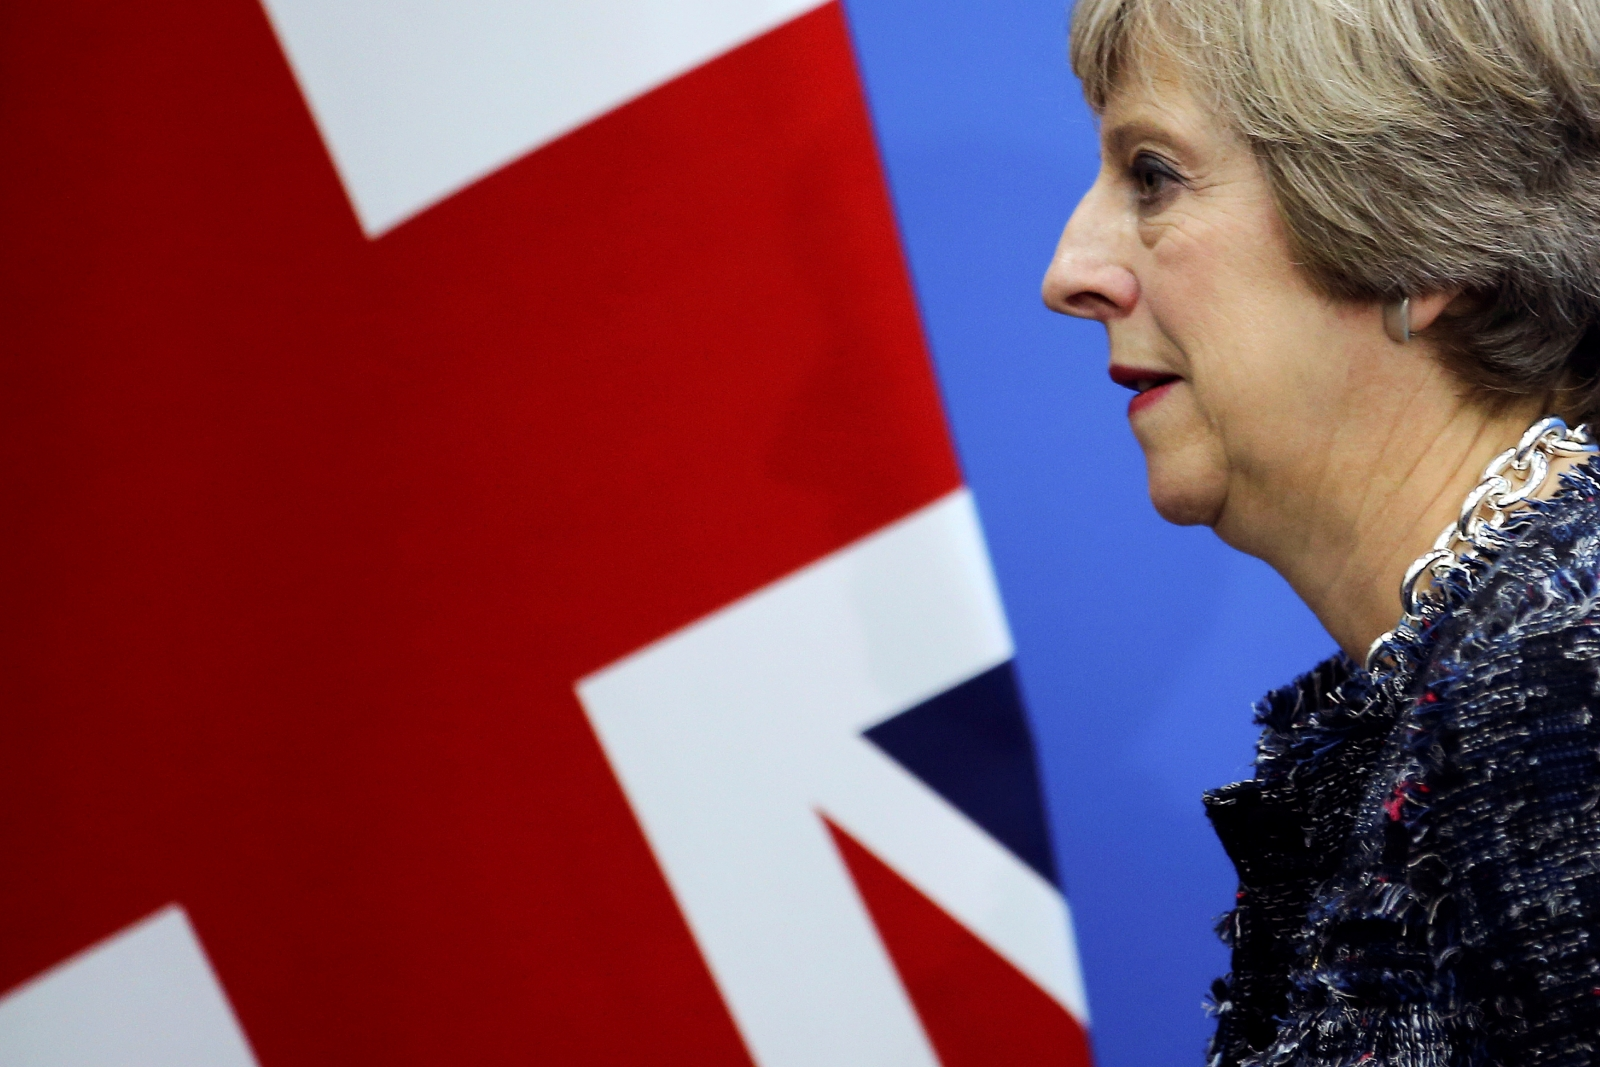 BREXIT: May speaks, Europe doesn't